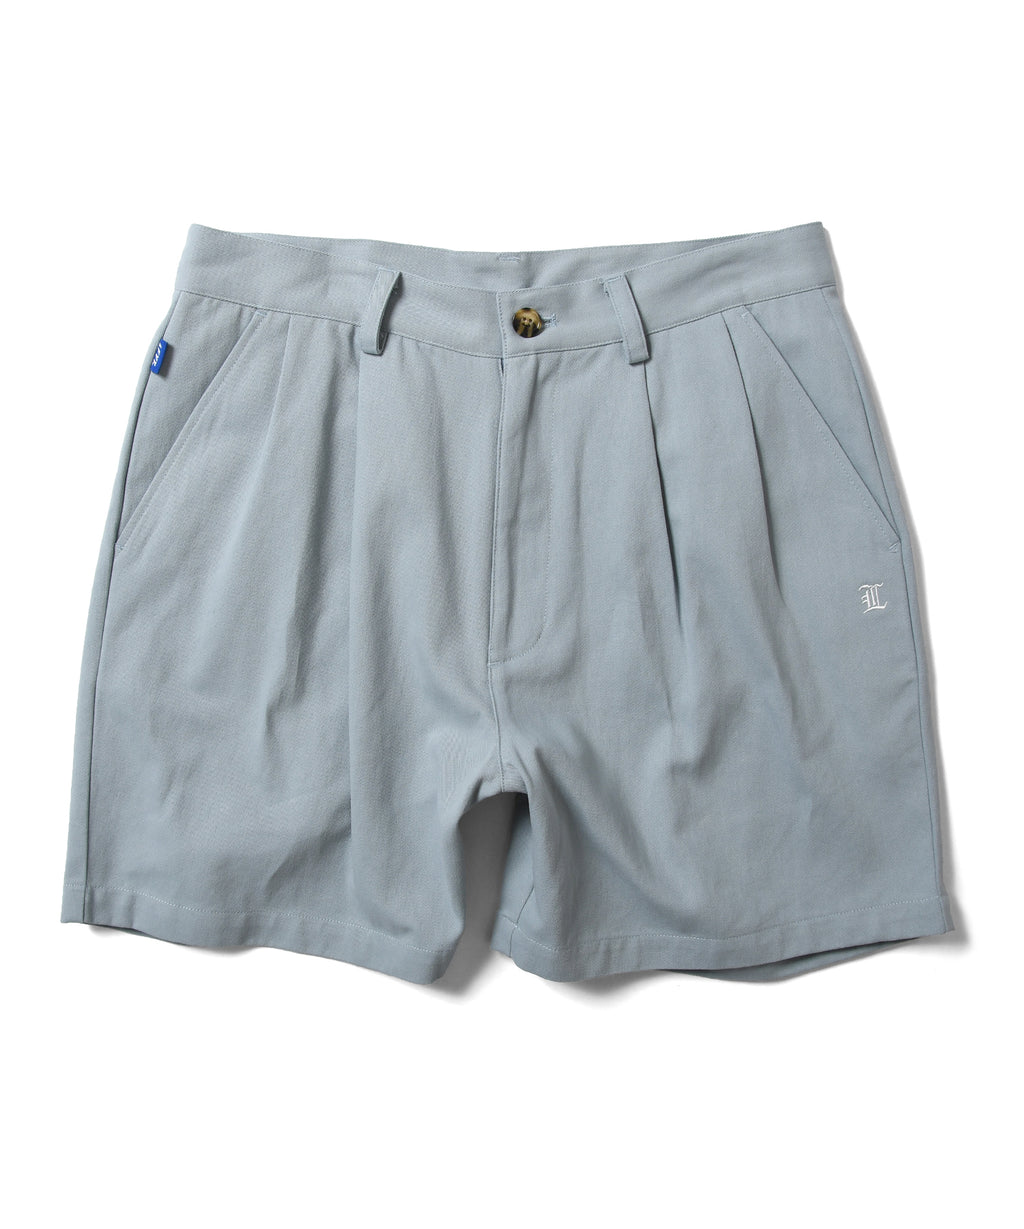 WIDE CHINO SHORTS LS211303 BLUE